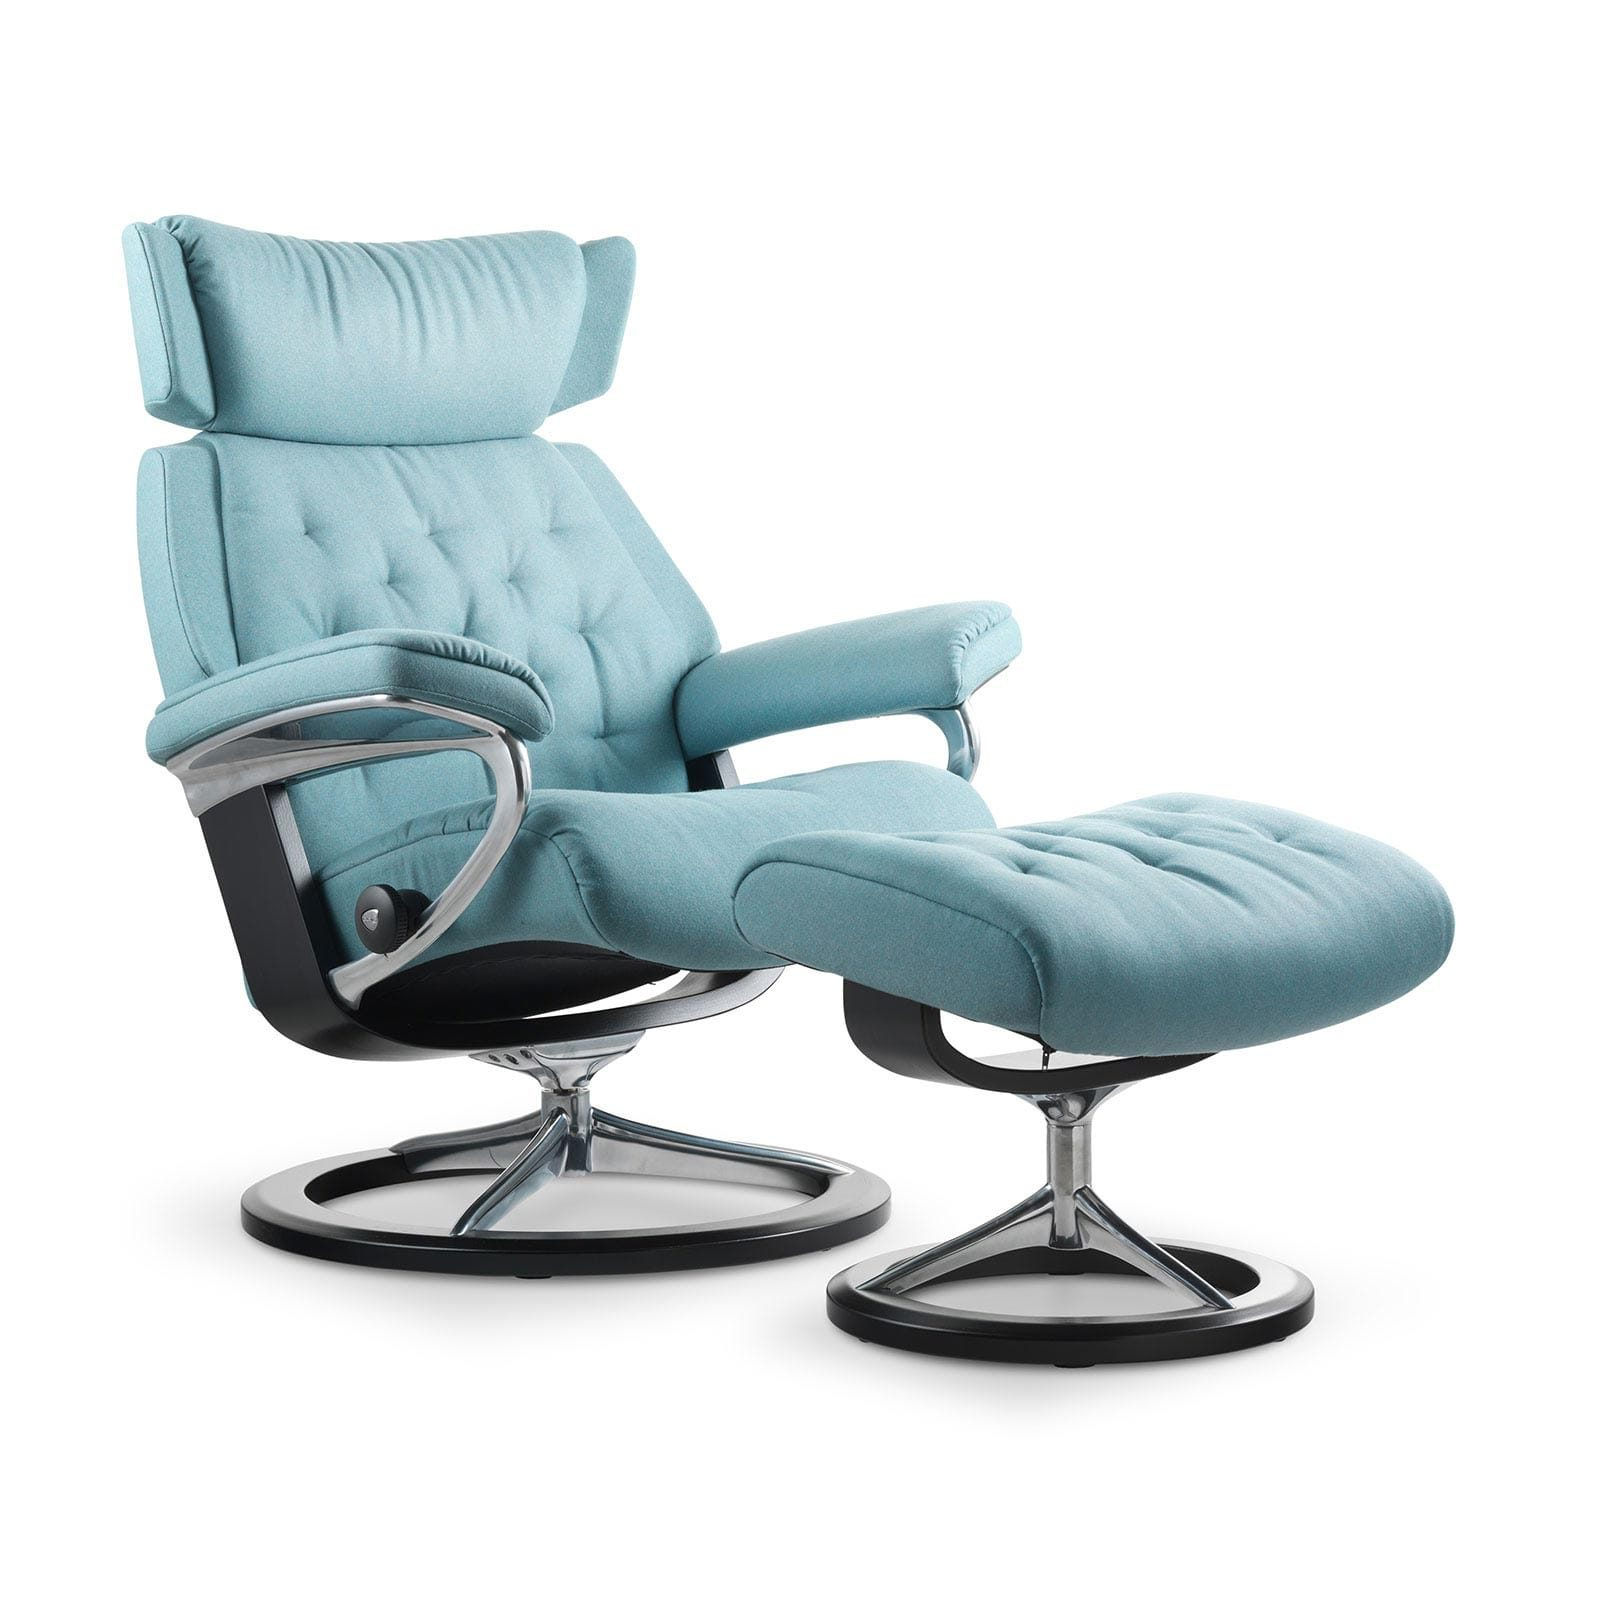 Sessel Aqua Stressless Skyline Calido Aqua Signature Wenge Mit Hocker